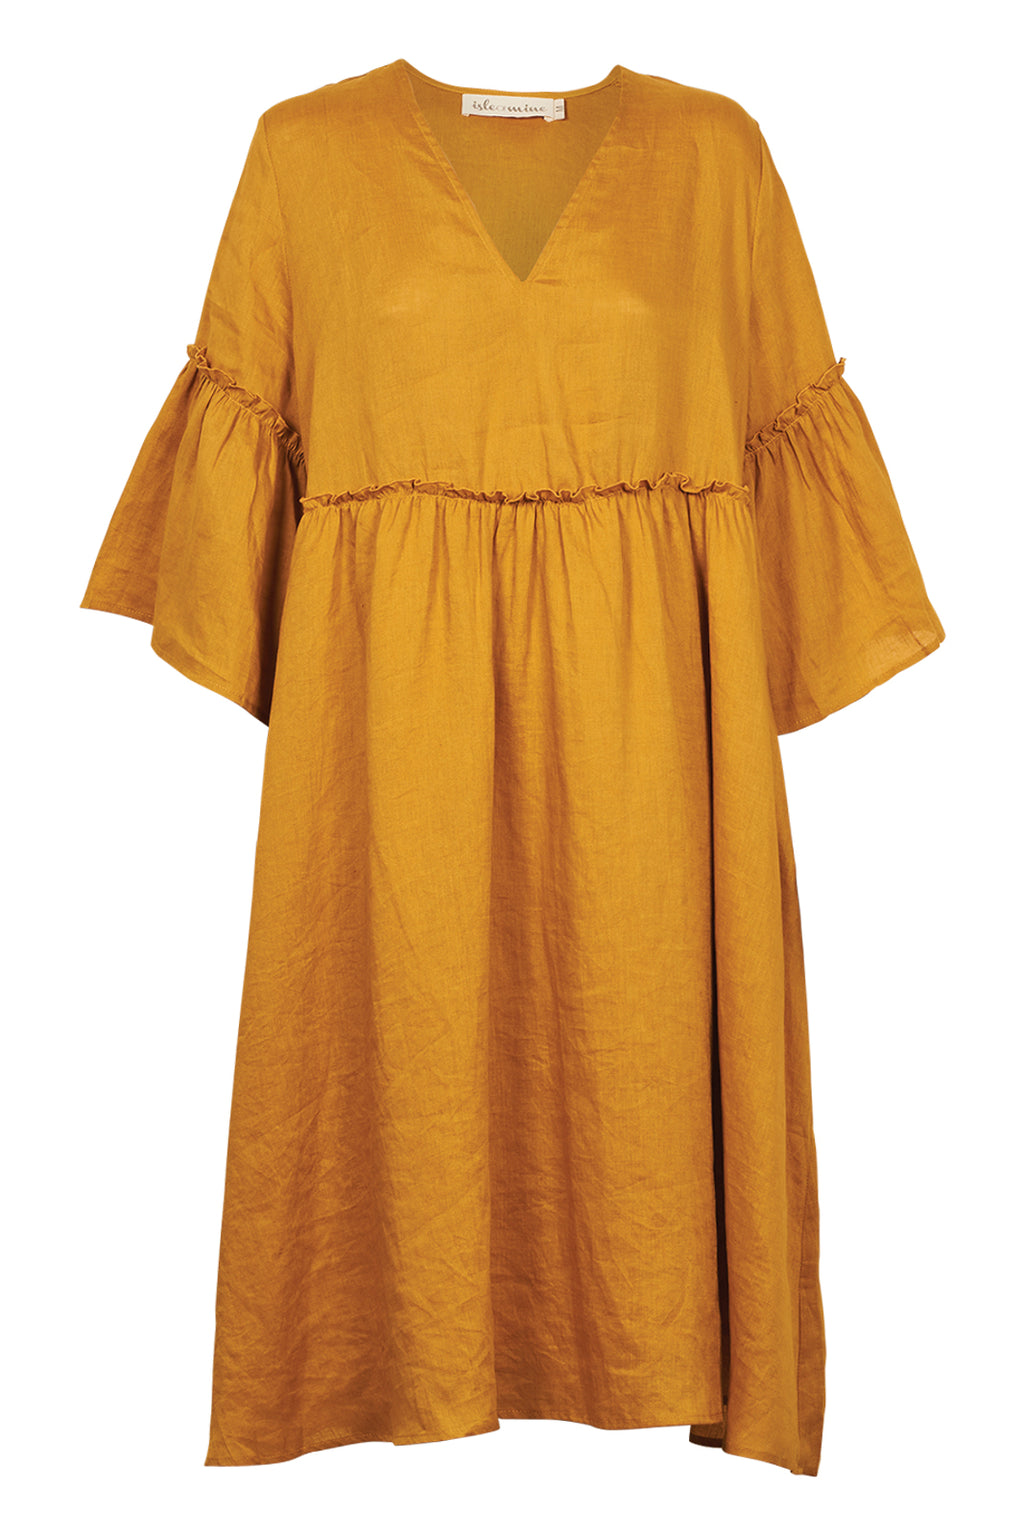 Eve Dress - Saffron - Isle of Mine Clothing - Dress Linen